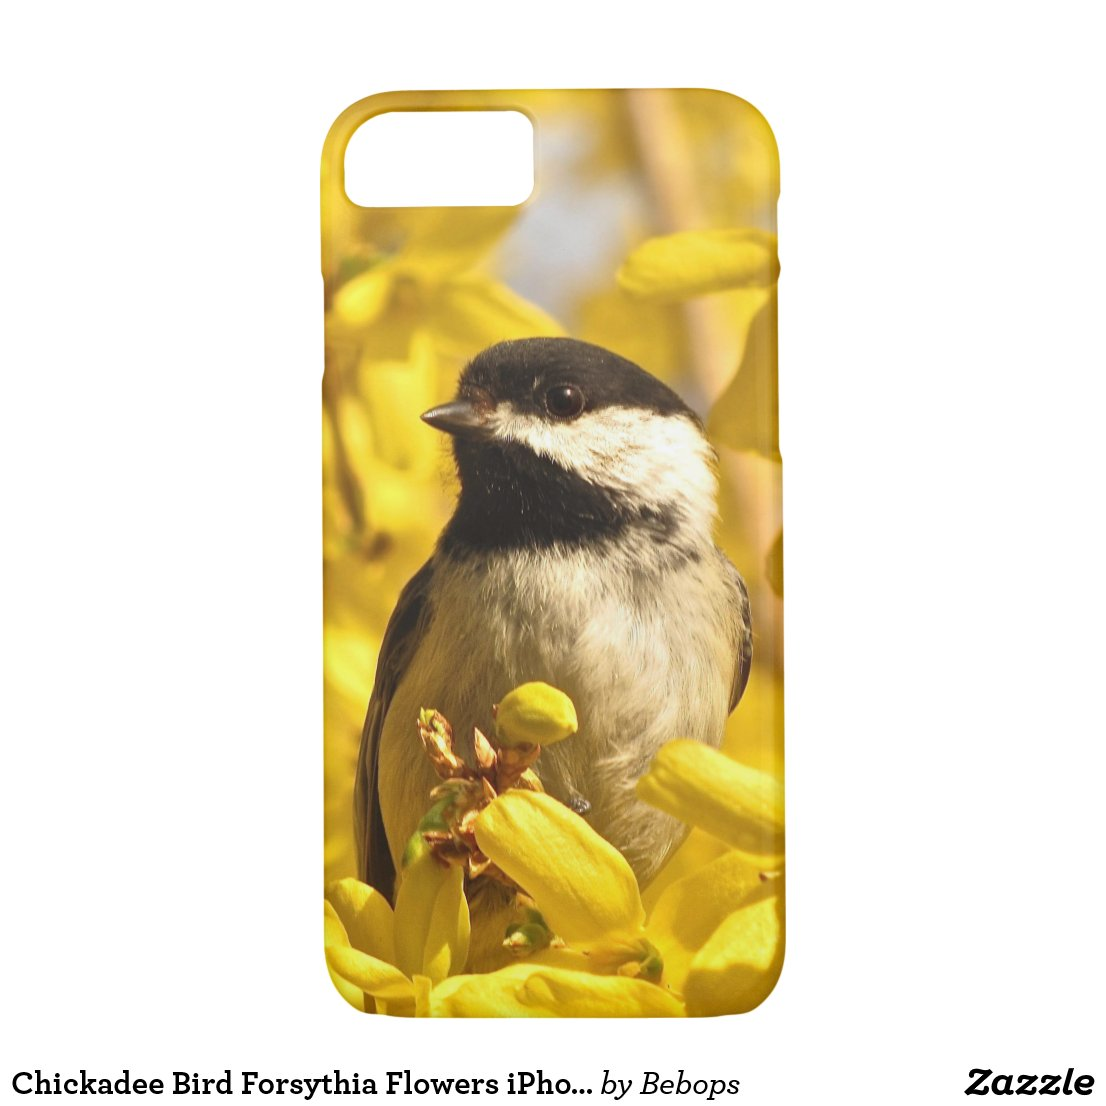 Chickadee Bird in Forsythia Flowers iPhone 7 Case